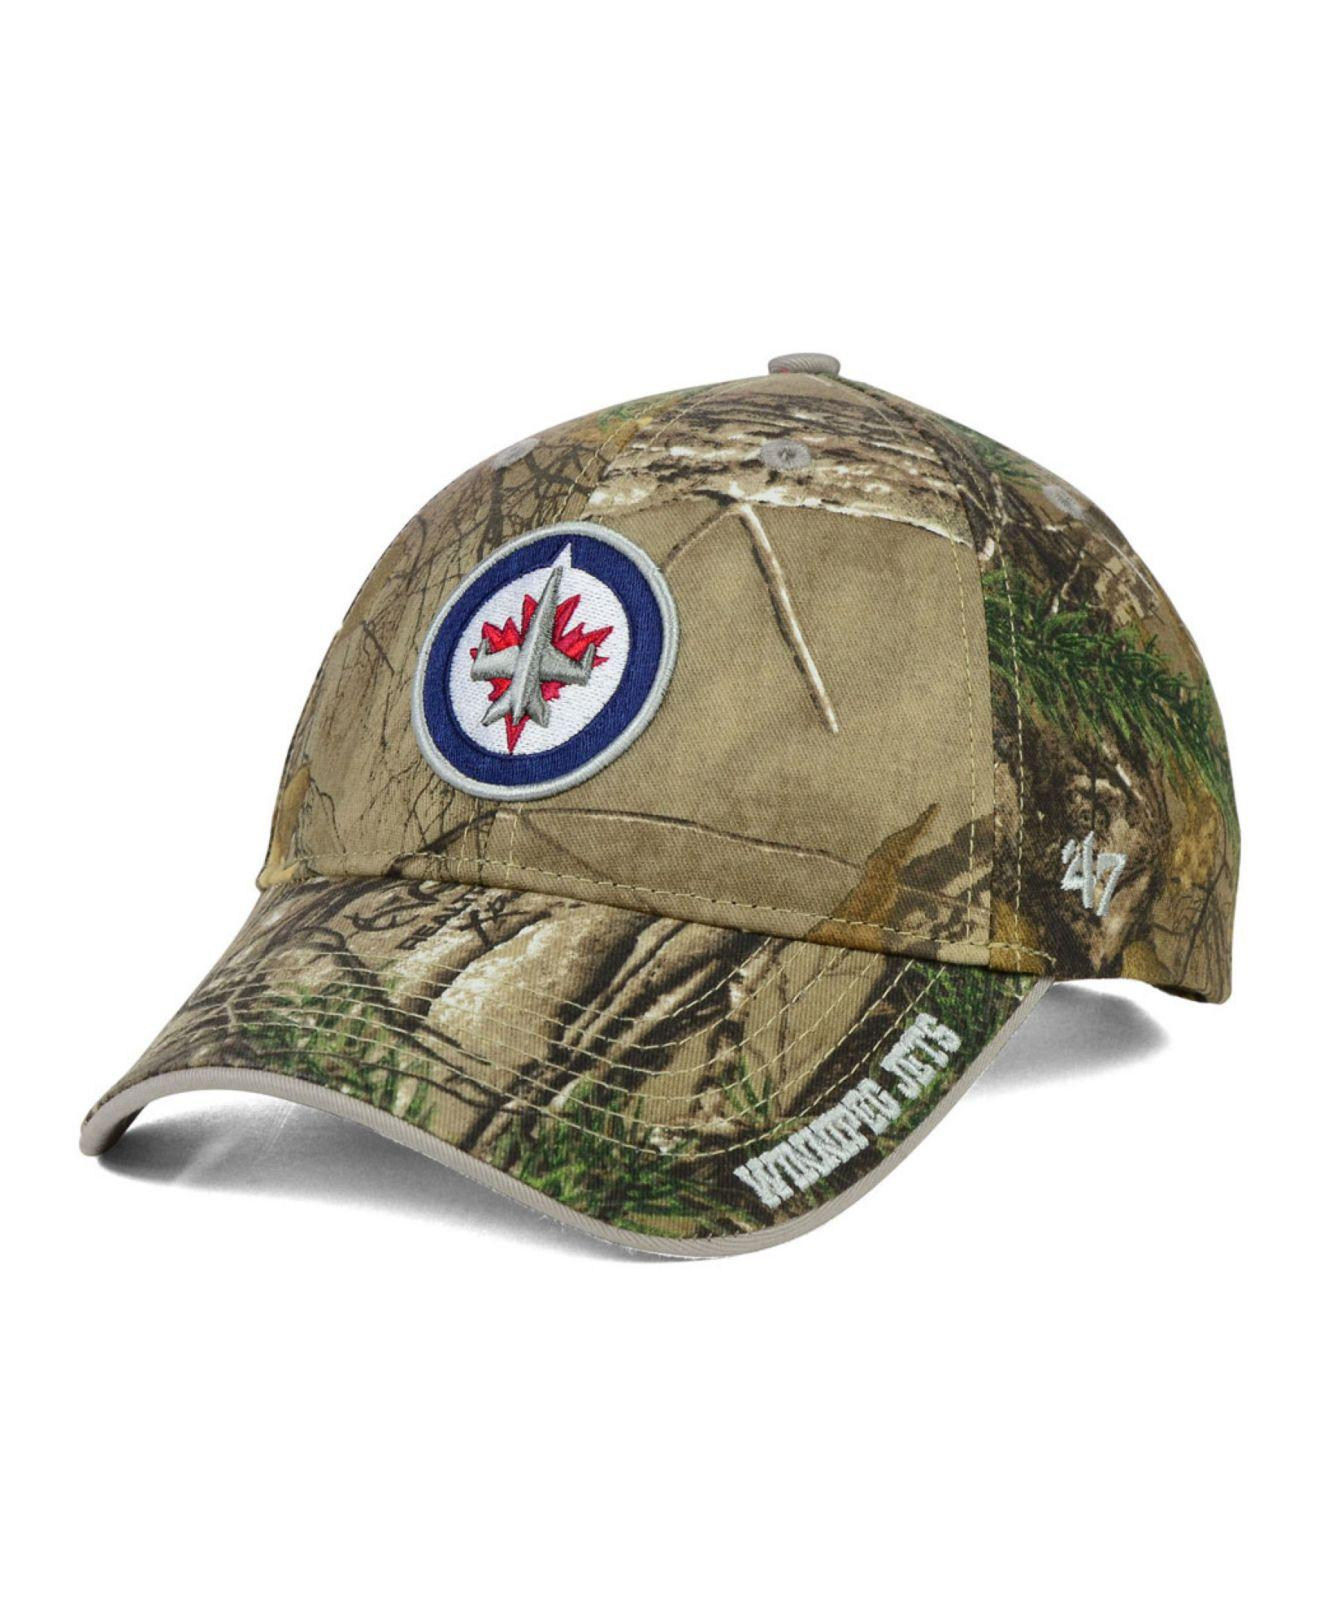 8997b7940a9 ... hat penguins pens nhl pittsburgh pirates pittsburgh 2ab32 6fb00  low  price discount lyst 47 brand winnipeg jets real tree frost cap in green for  men